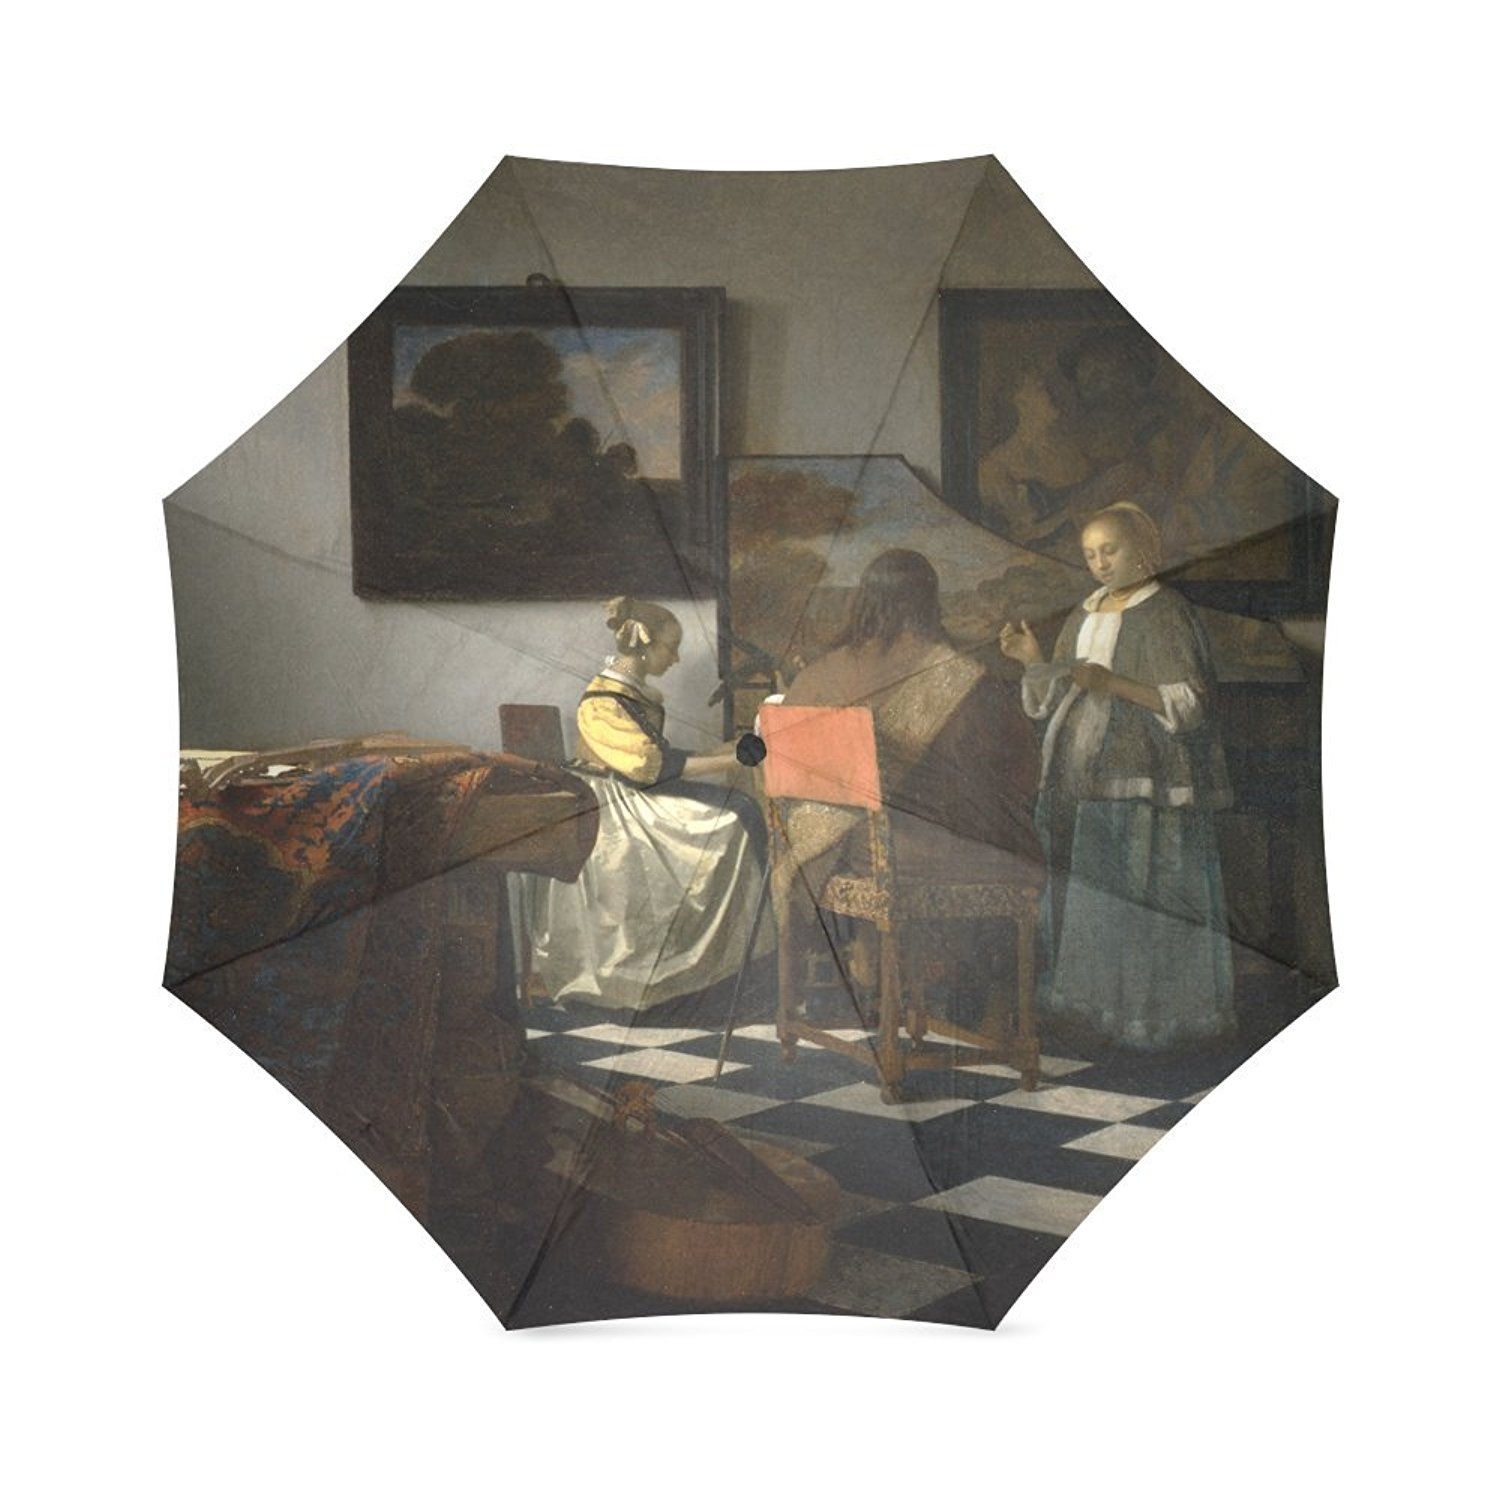 Friends Novelty Birthday Gifts Presents Vermeer, The Concert 100% Fabric And Aluminium Foldable High-quality Umbrella